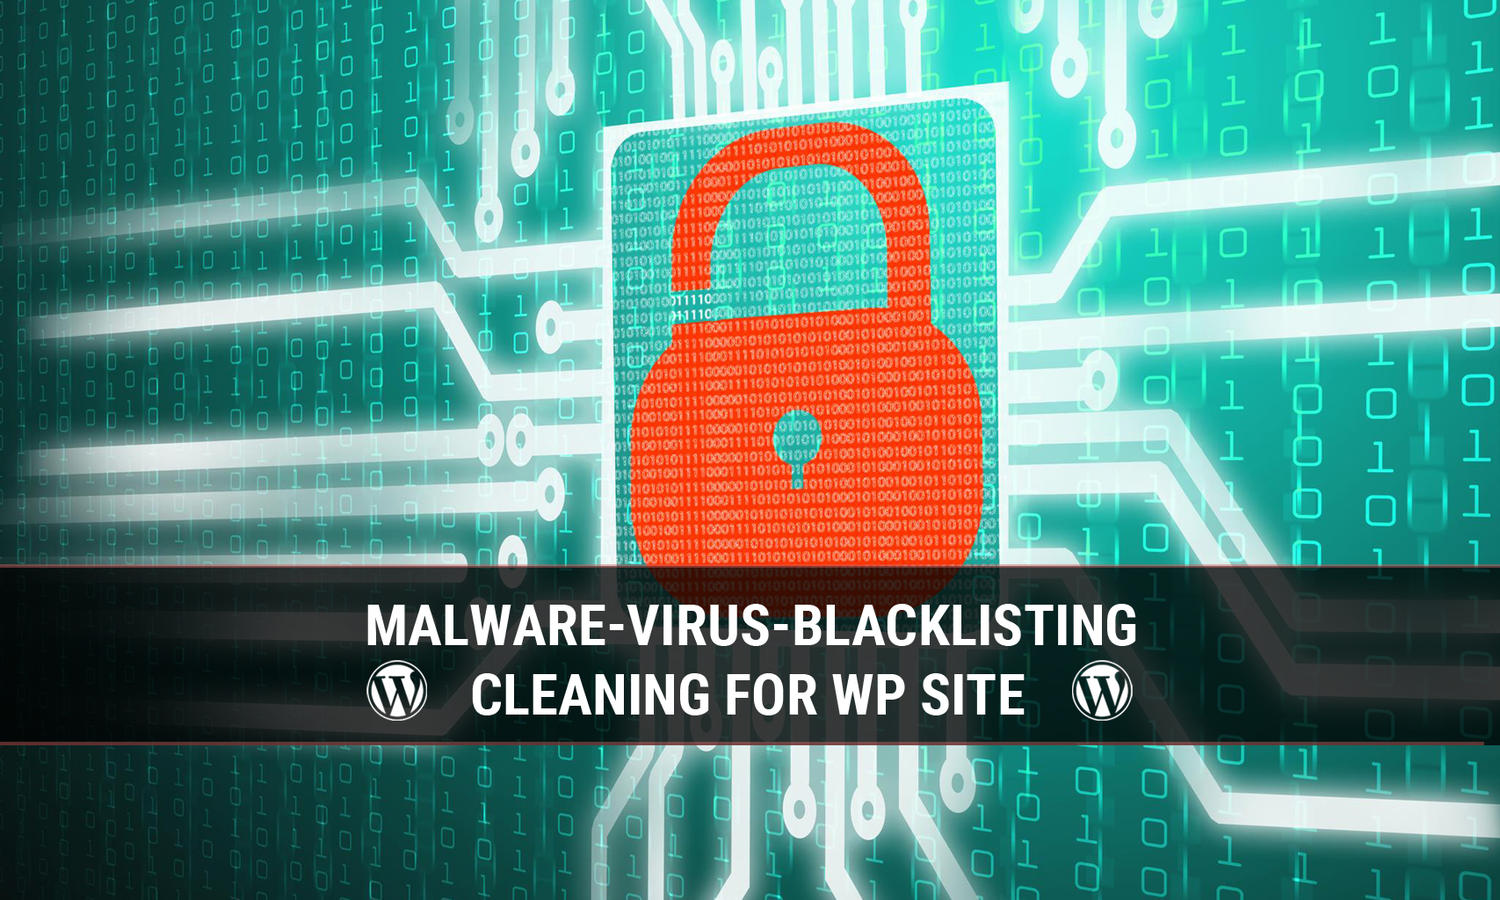 Malware, Virus and Blacklisting cleaning for CMS Site by madridnyc - 110533